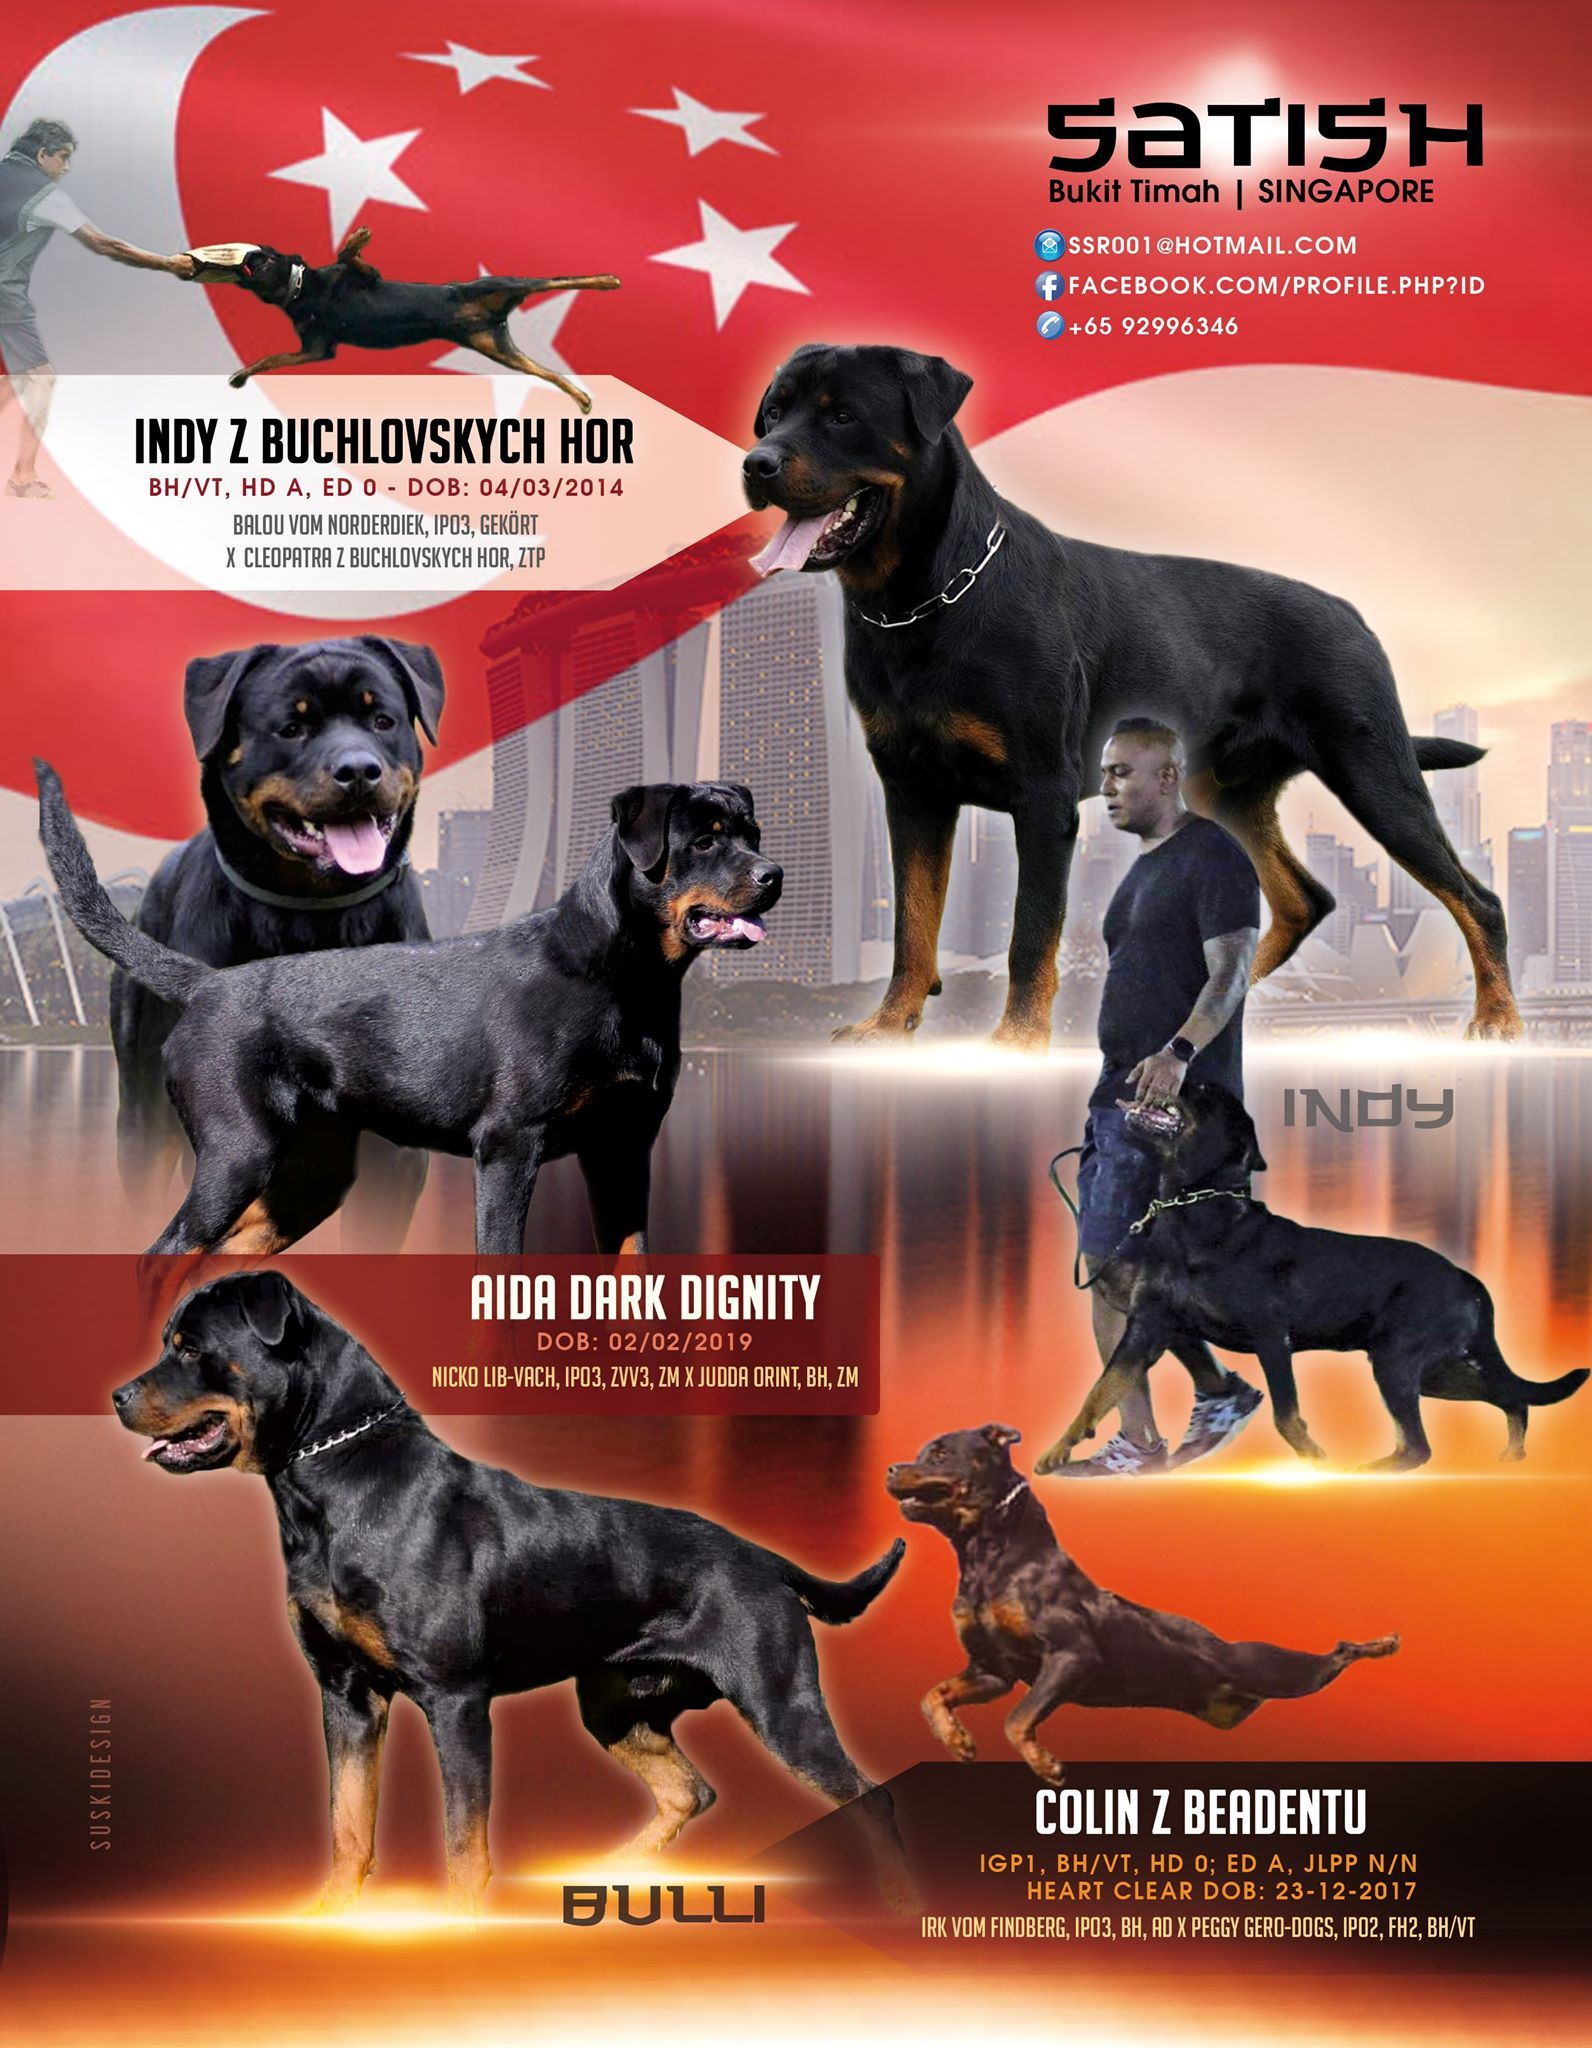 Satish Bukit Timah Singapore Ssr001 Hotmail Com 65 92996346 Www Facebook Com Profile Php Id In 2020 Rottweiler Breed Rottweiler Stud Dog